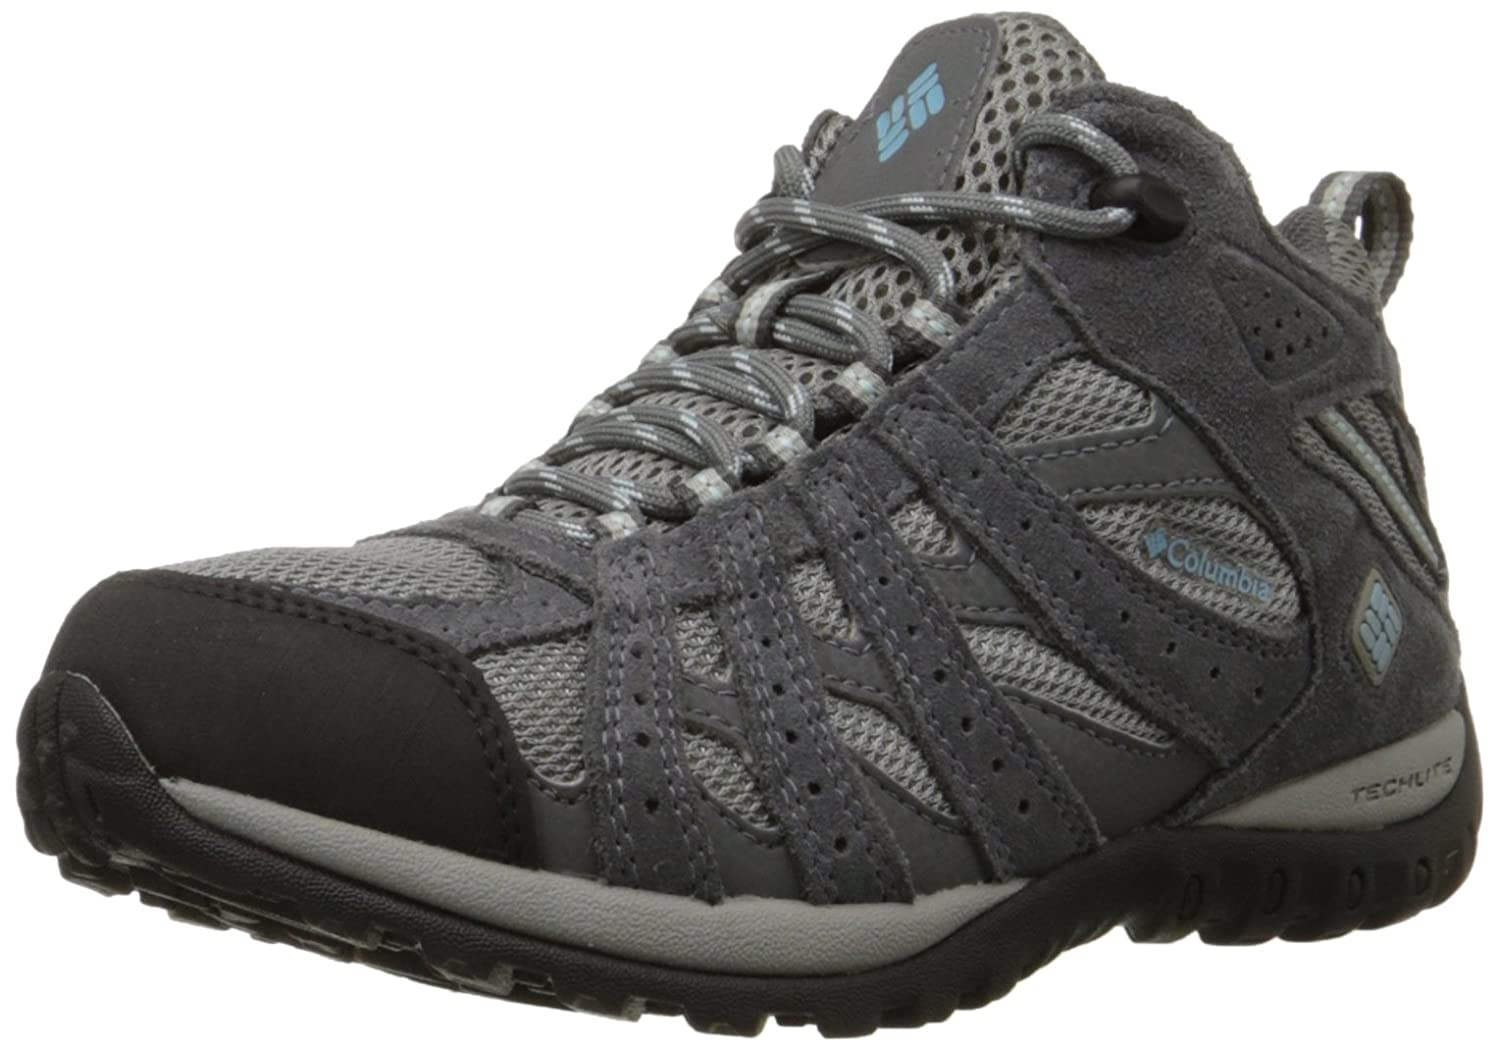 Light Grey, Sky bluee Columbia Women's Redmond Mid Waterproof Hiking Boot, Breathable, High-Traction Grip